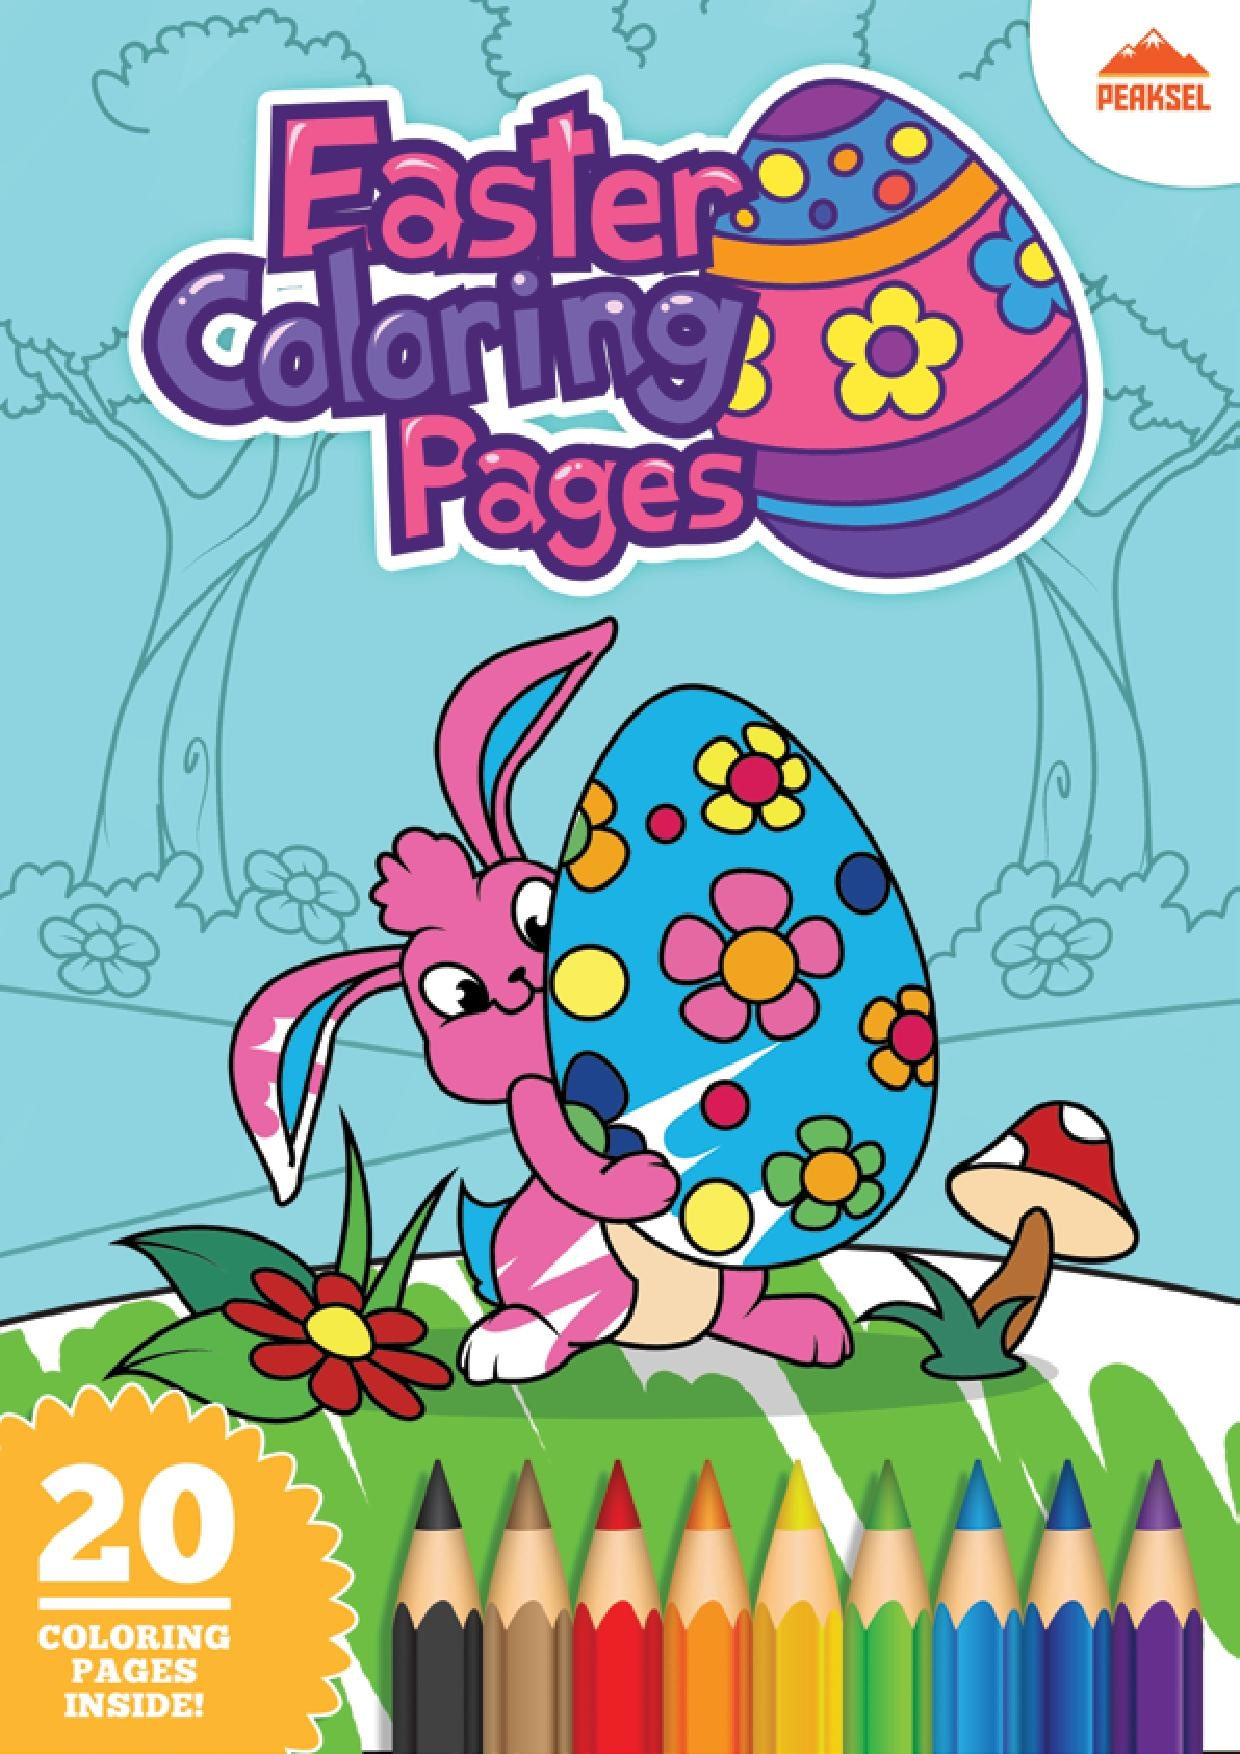 FileEaster Coloring Pages PDFpdf